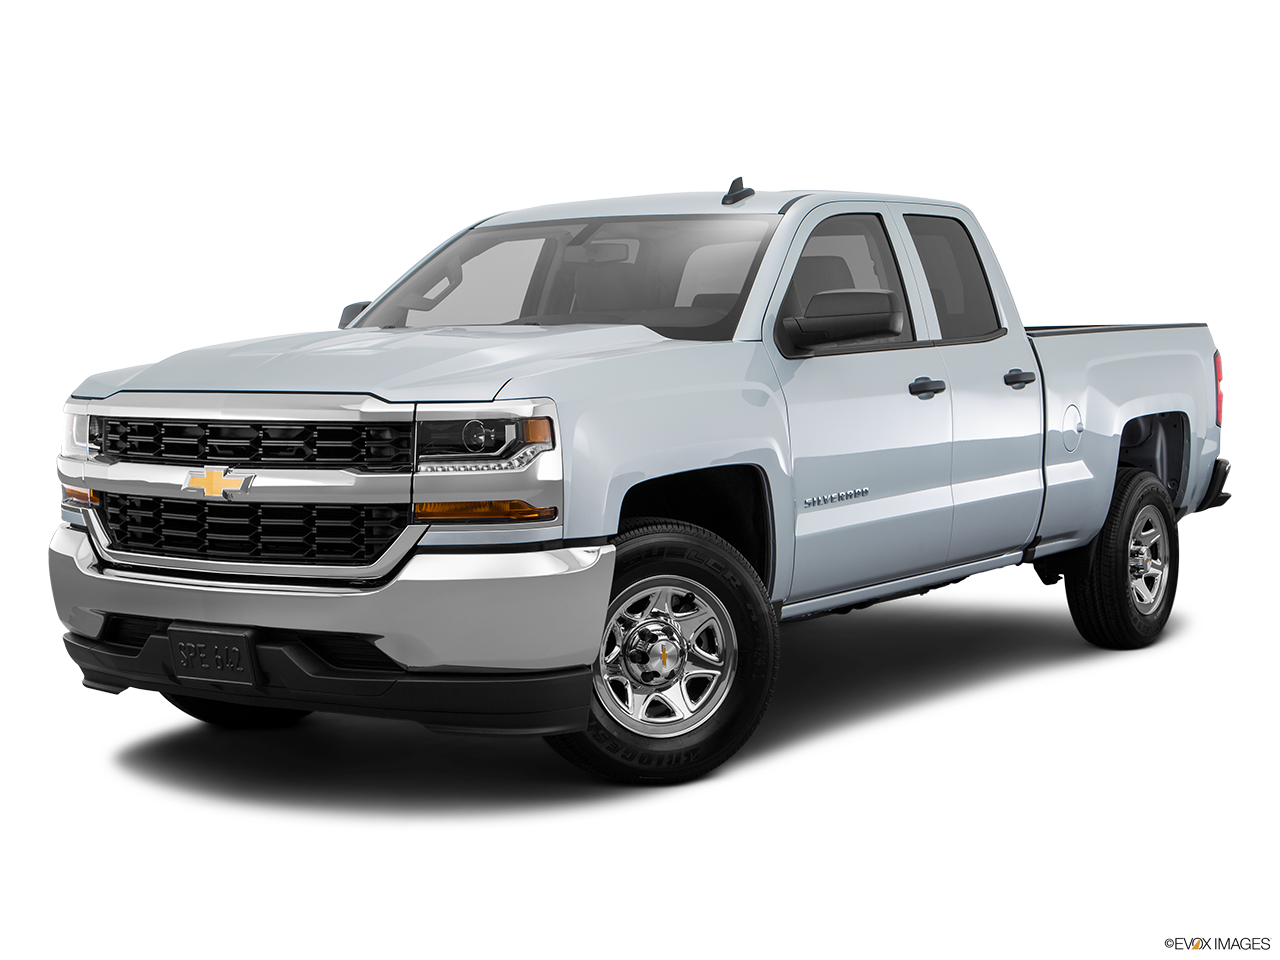 drive a 2016 chevrolet silverado 1500 at champion chevrolet in reno. Cars Review. Best American Auto & Cars Review